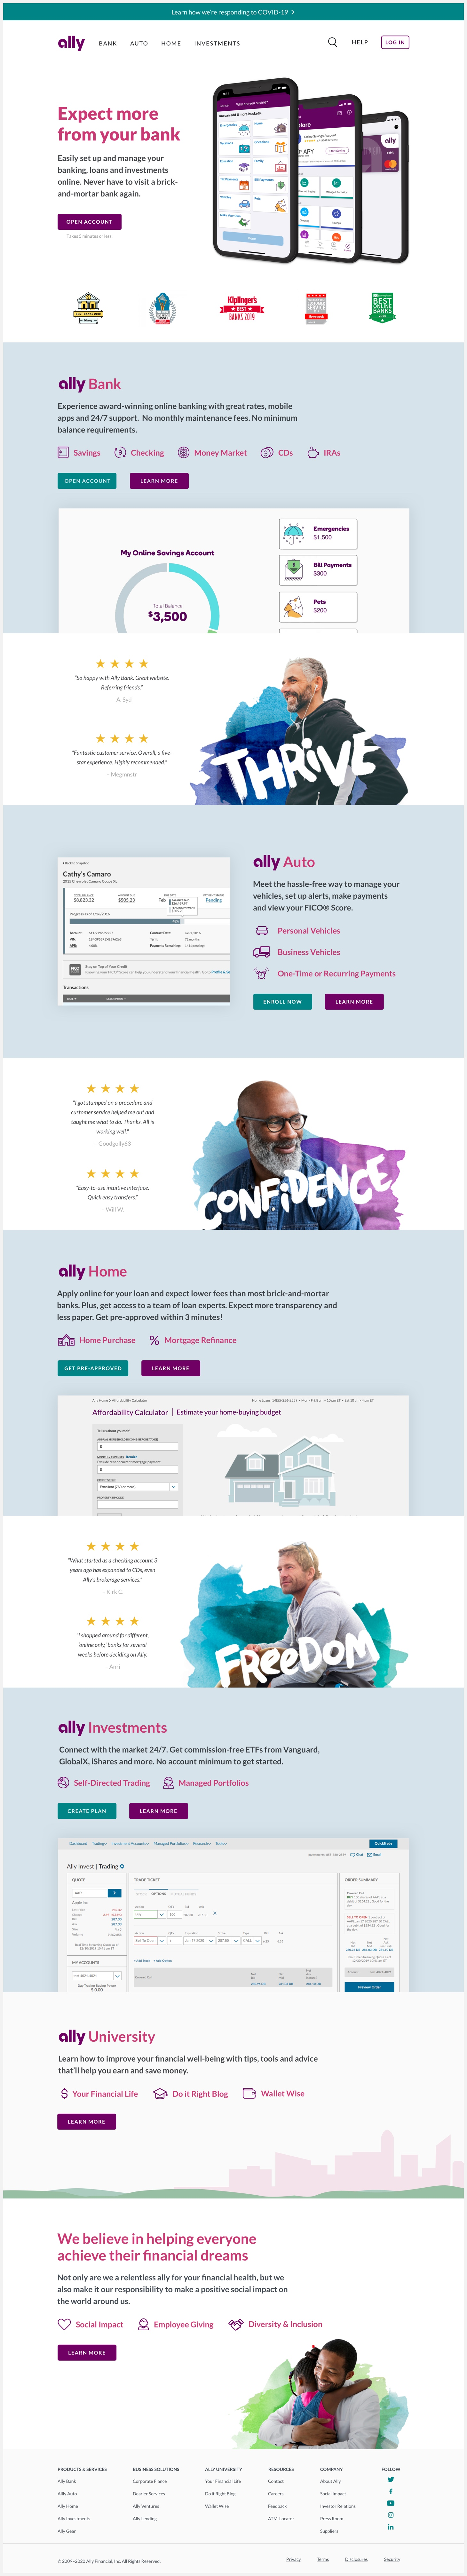 Ally Financial's redesigned website.